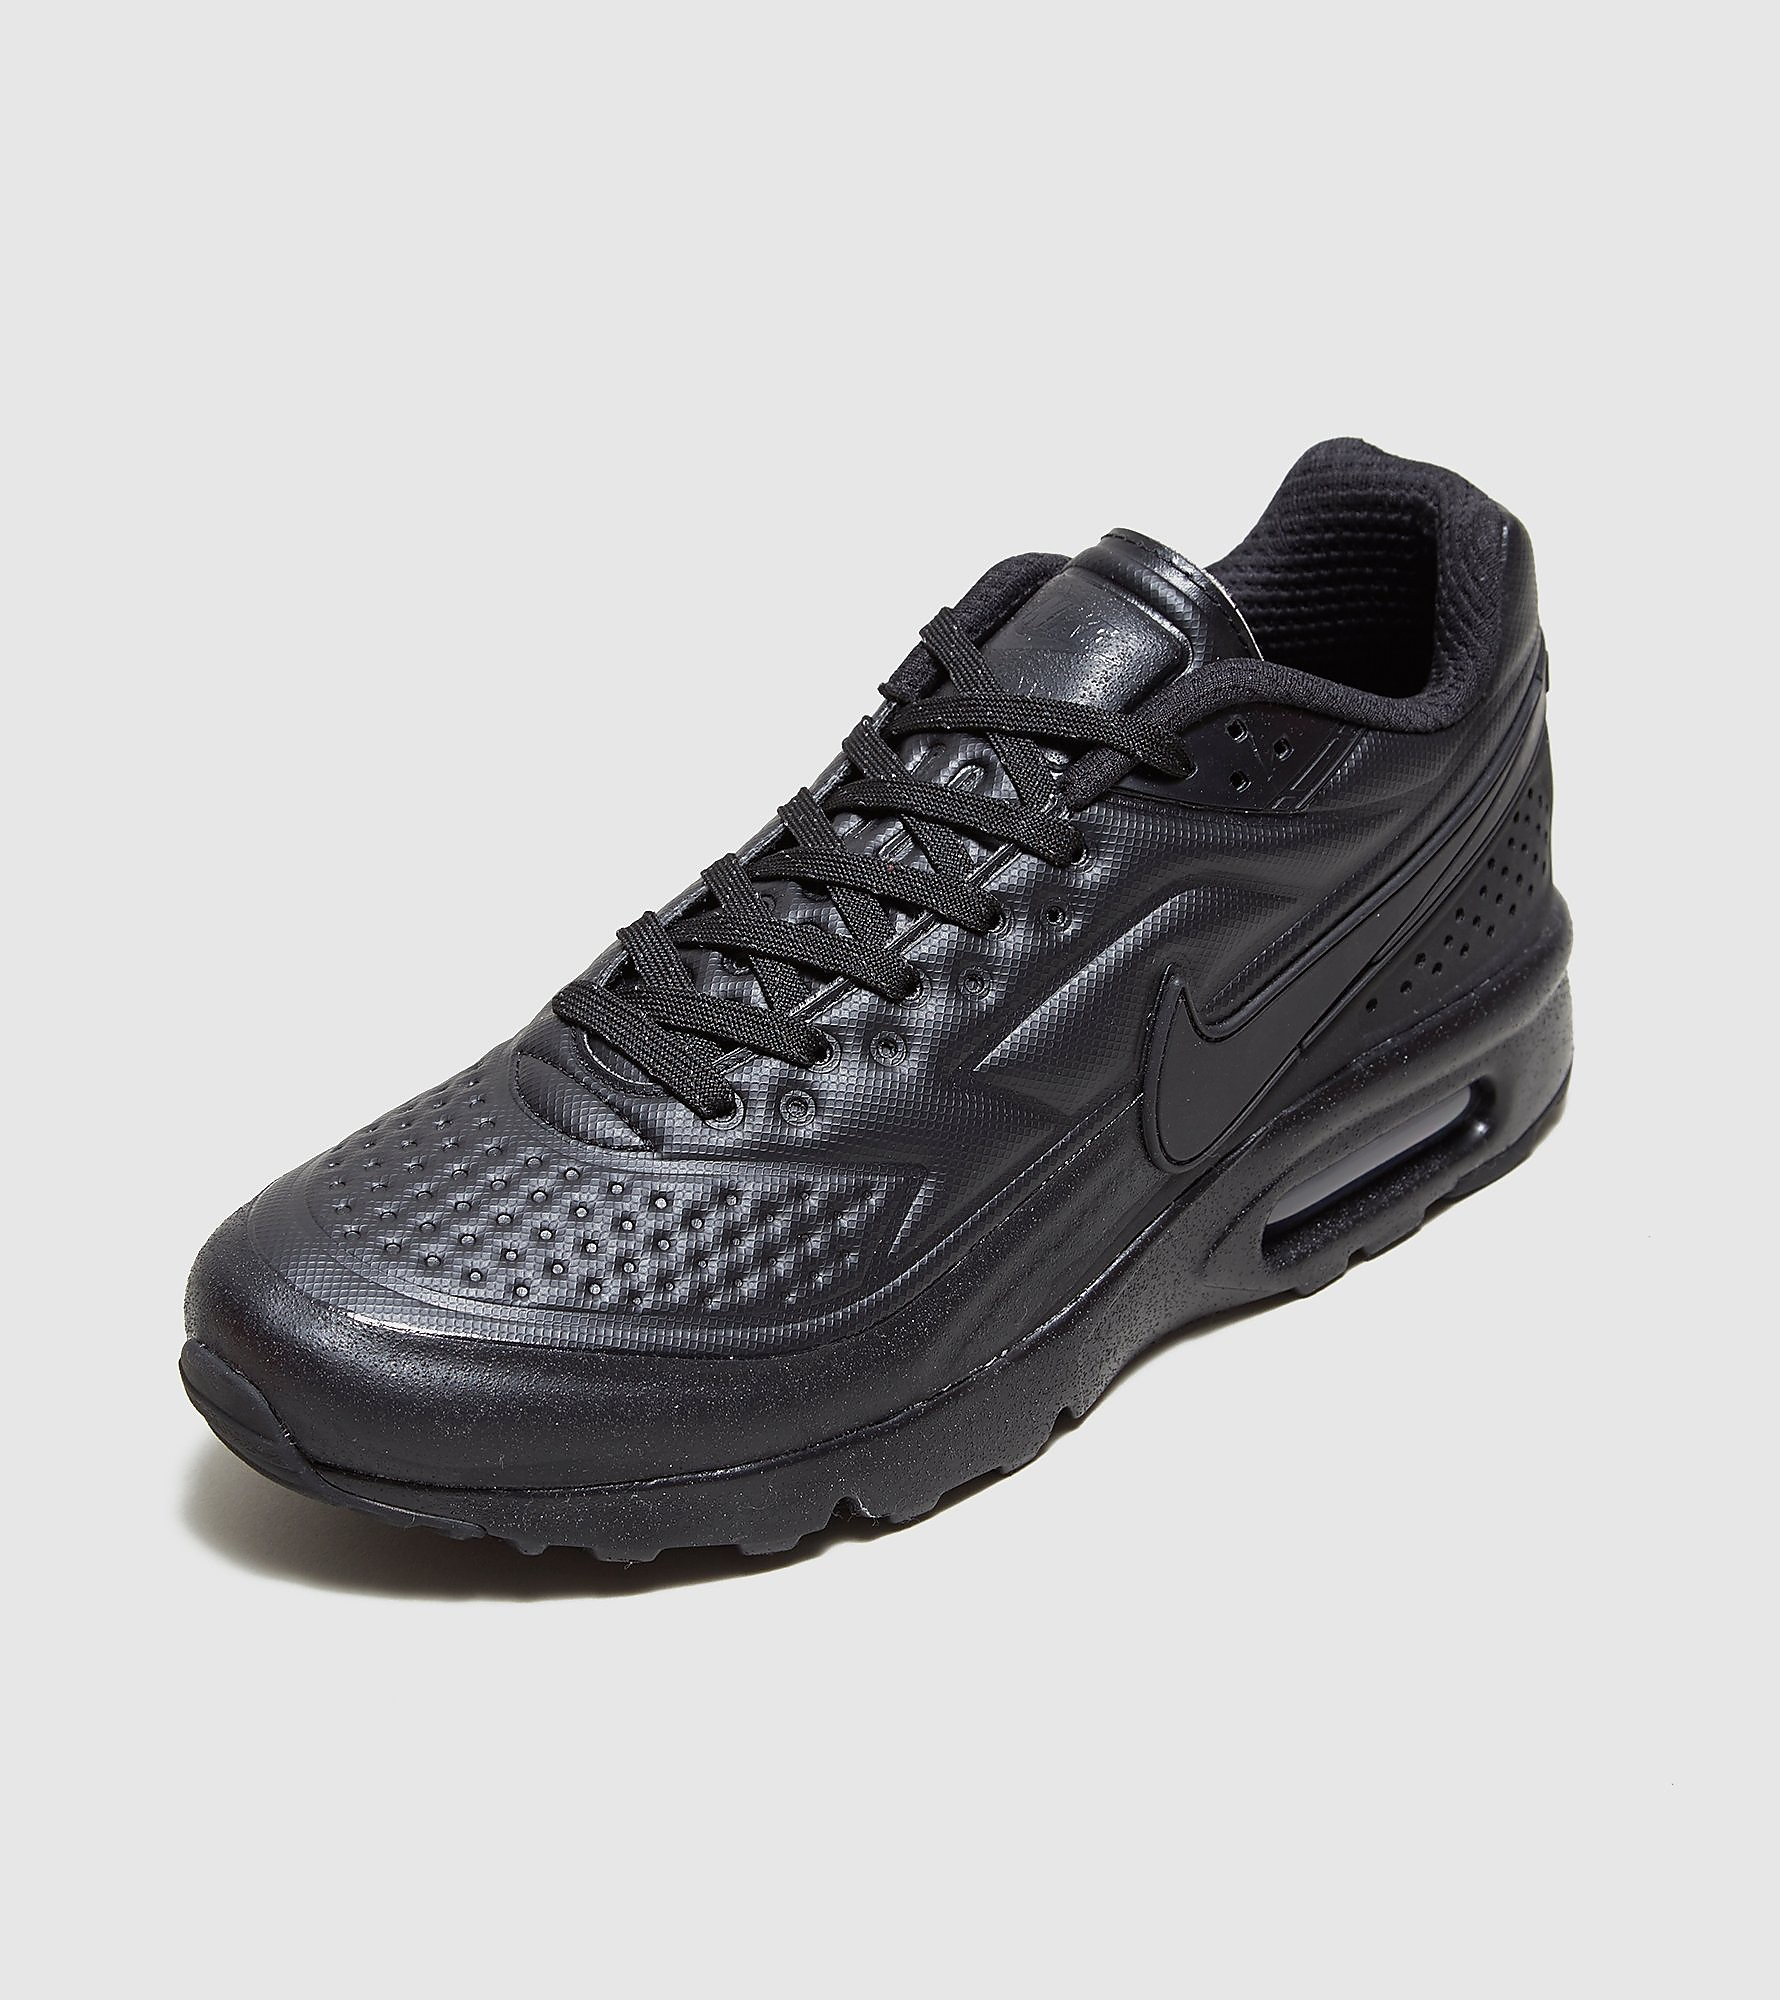 Nike Air Max BW Ultra Special Edition Pack